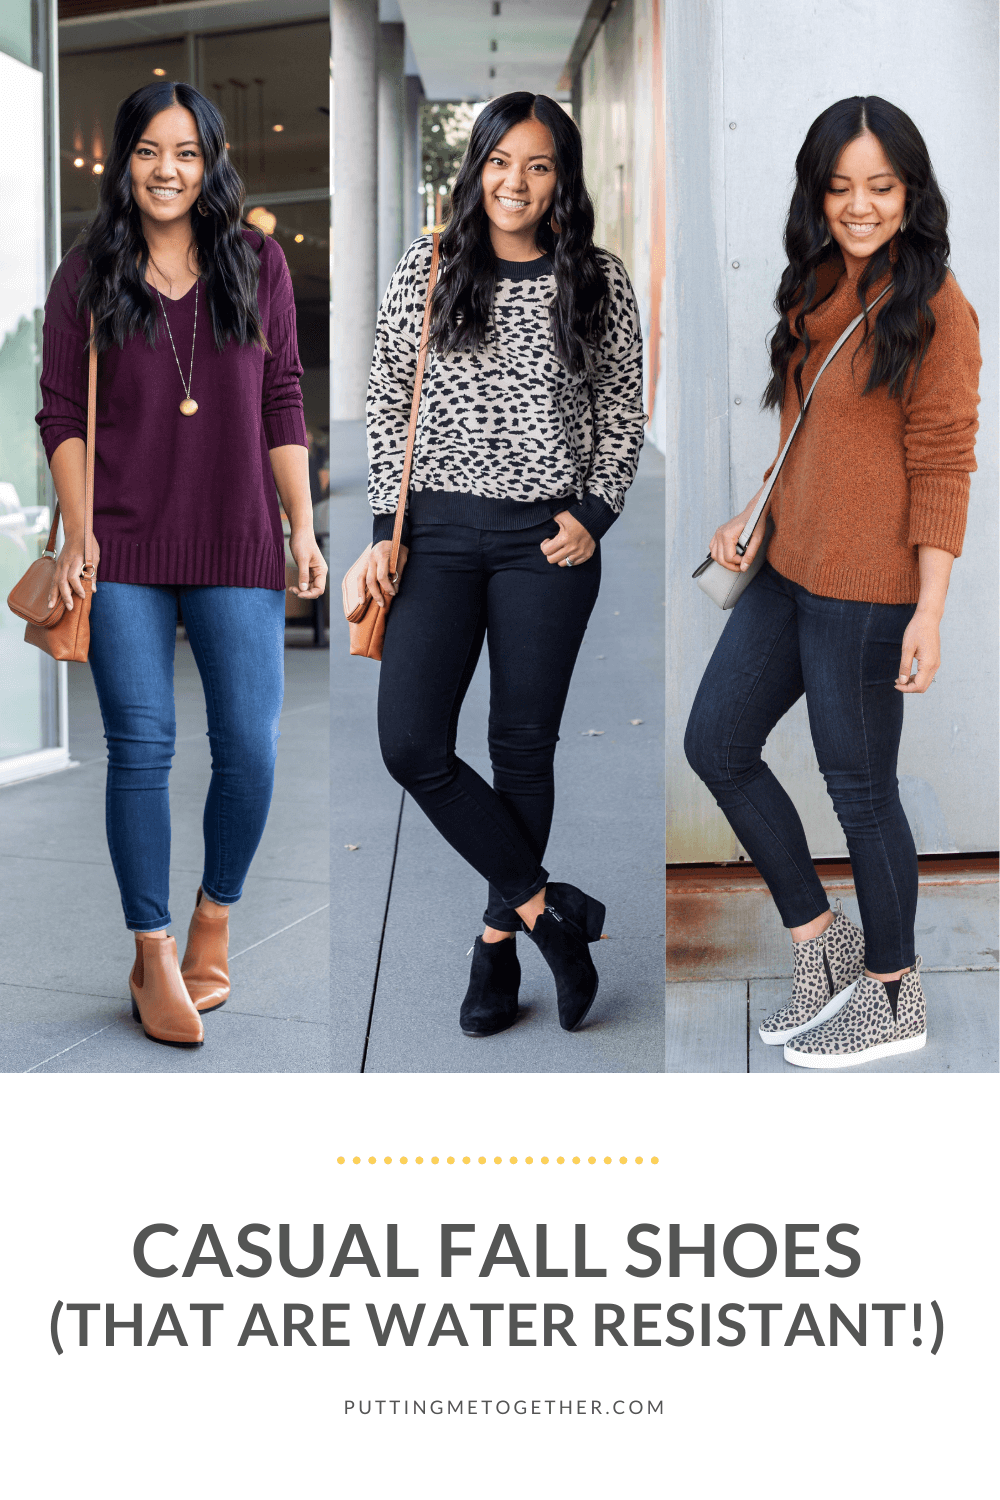 Casual Fall Shoes Water Resistant